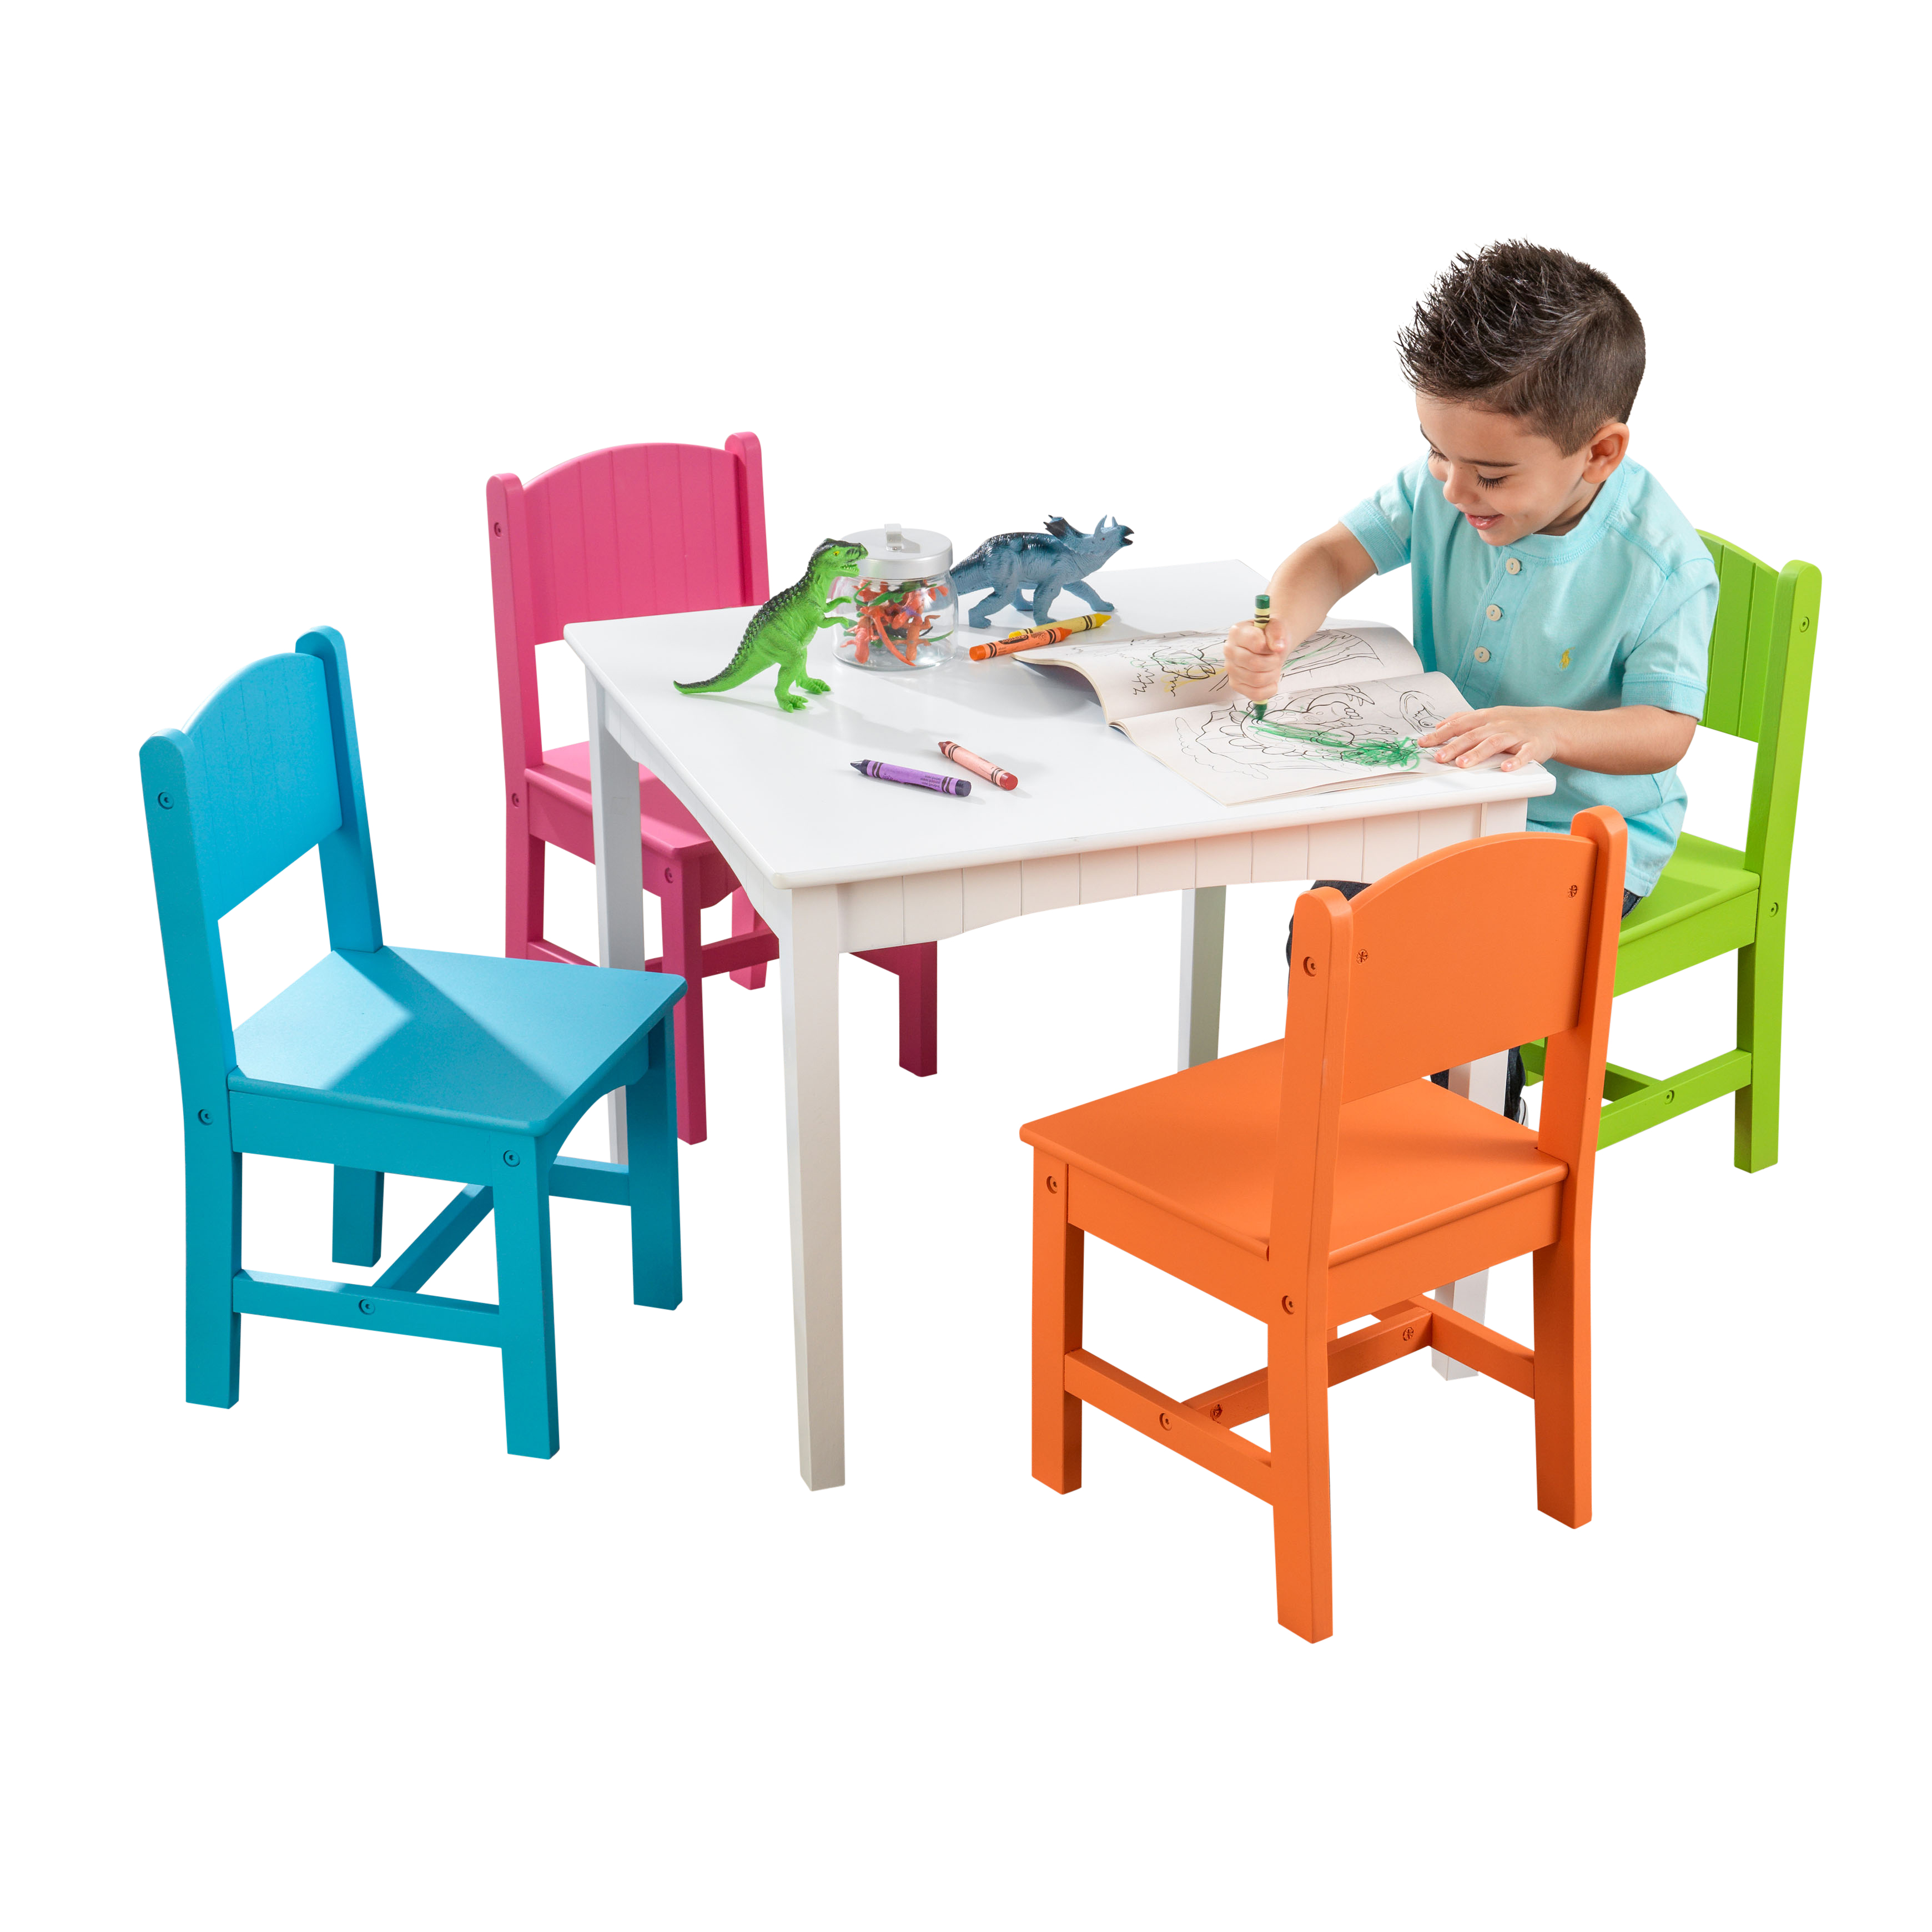 Ordinaire Nantucket Table And Chair Set   Brights